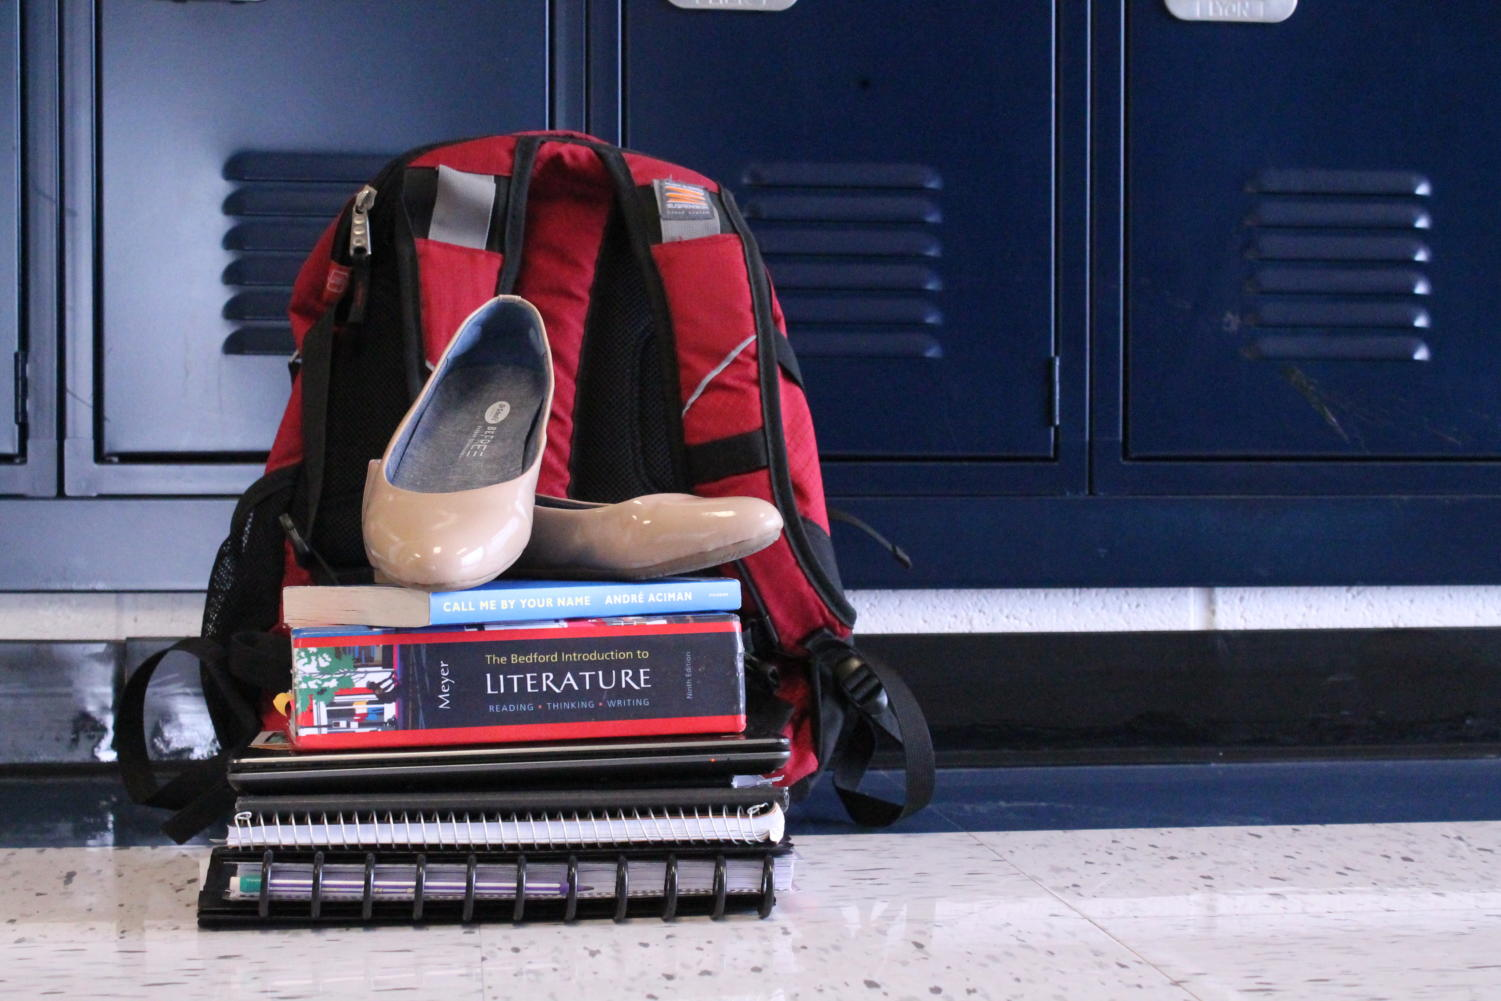 Textbooks, a planner and a spare pair of shoes are just a few of the items I keep with me in my 22.6 lbs backpack.